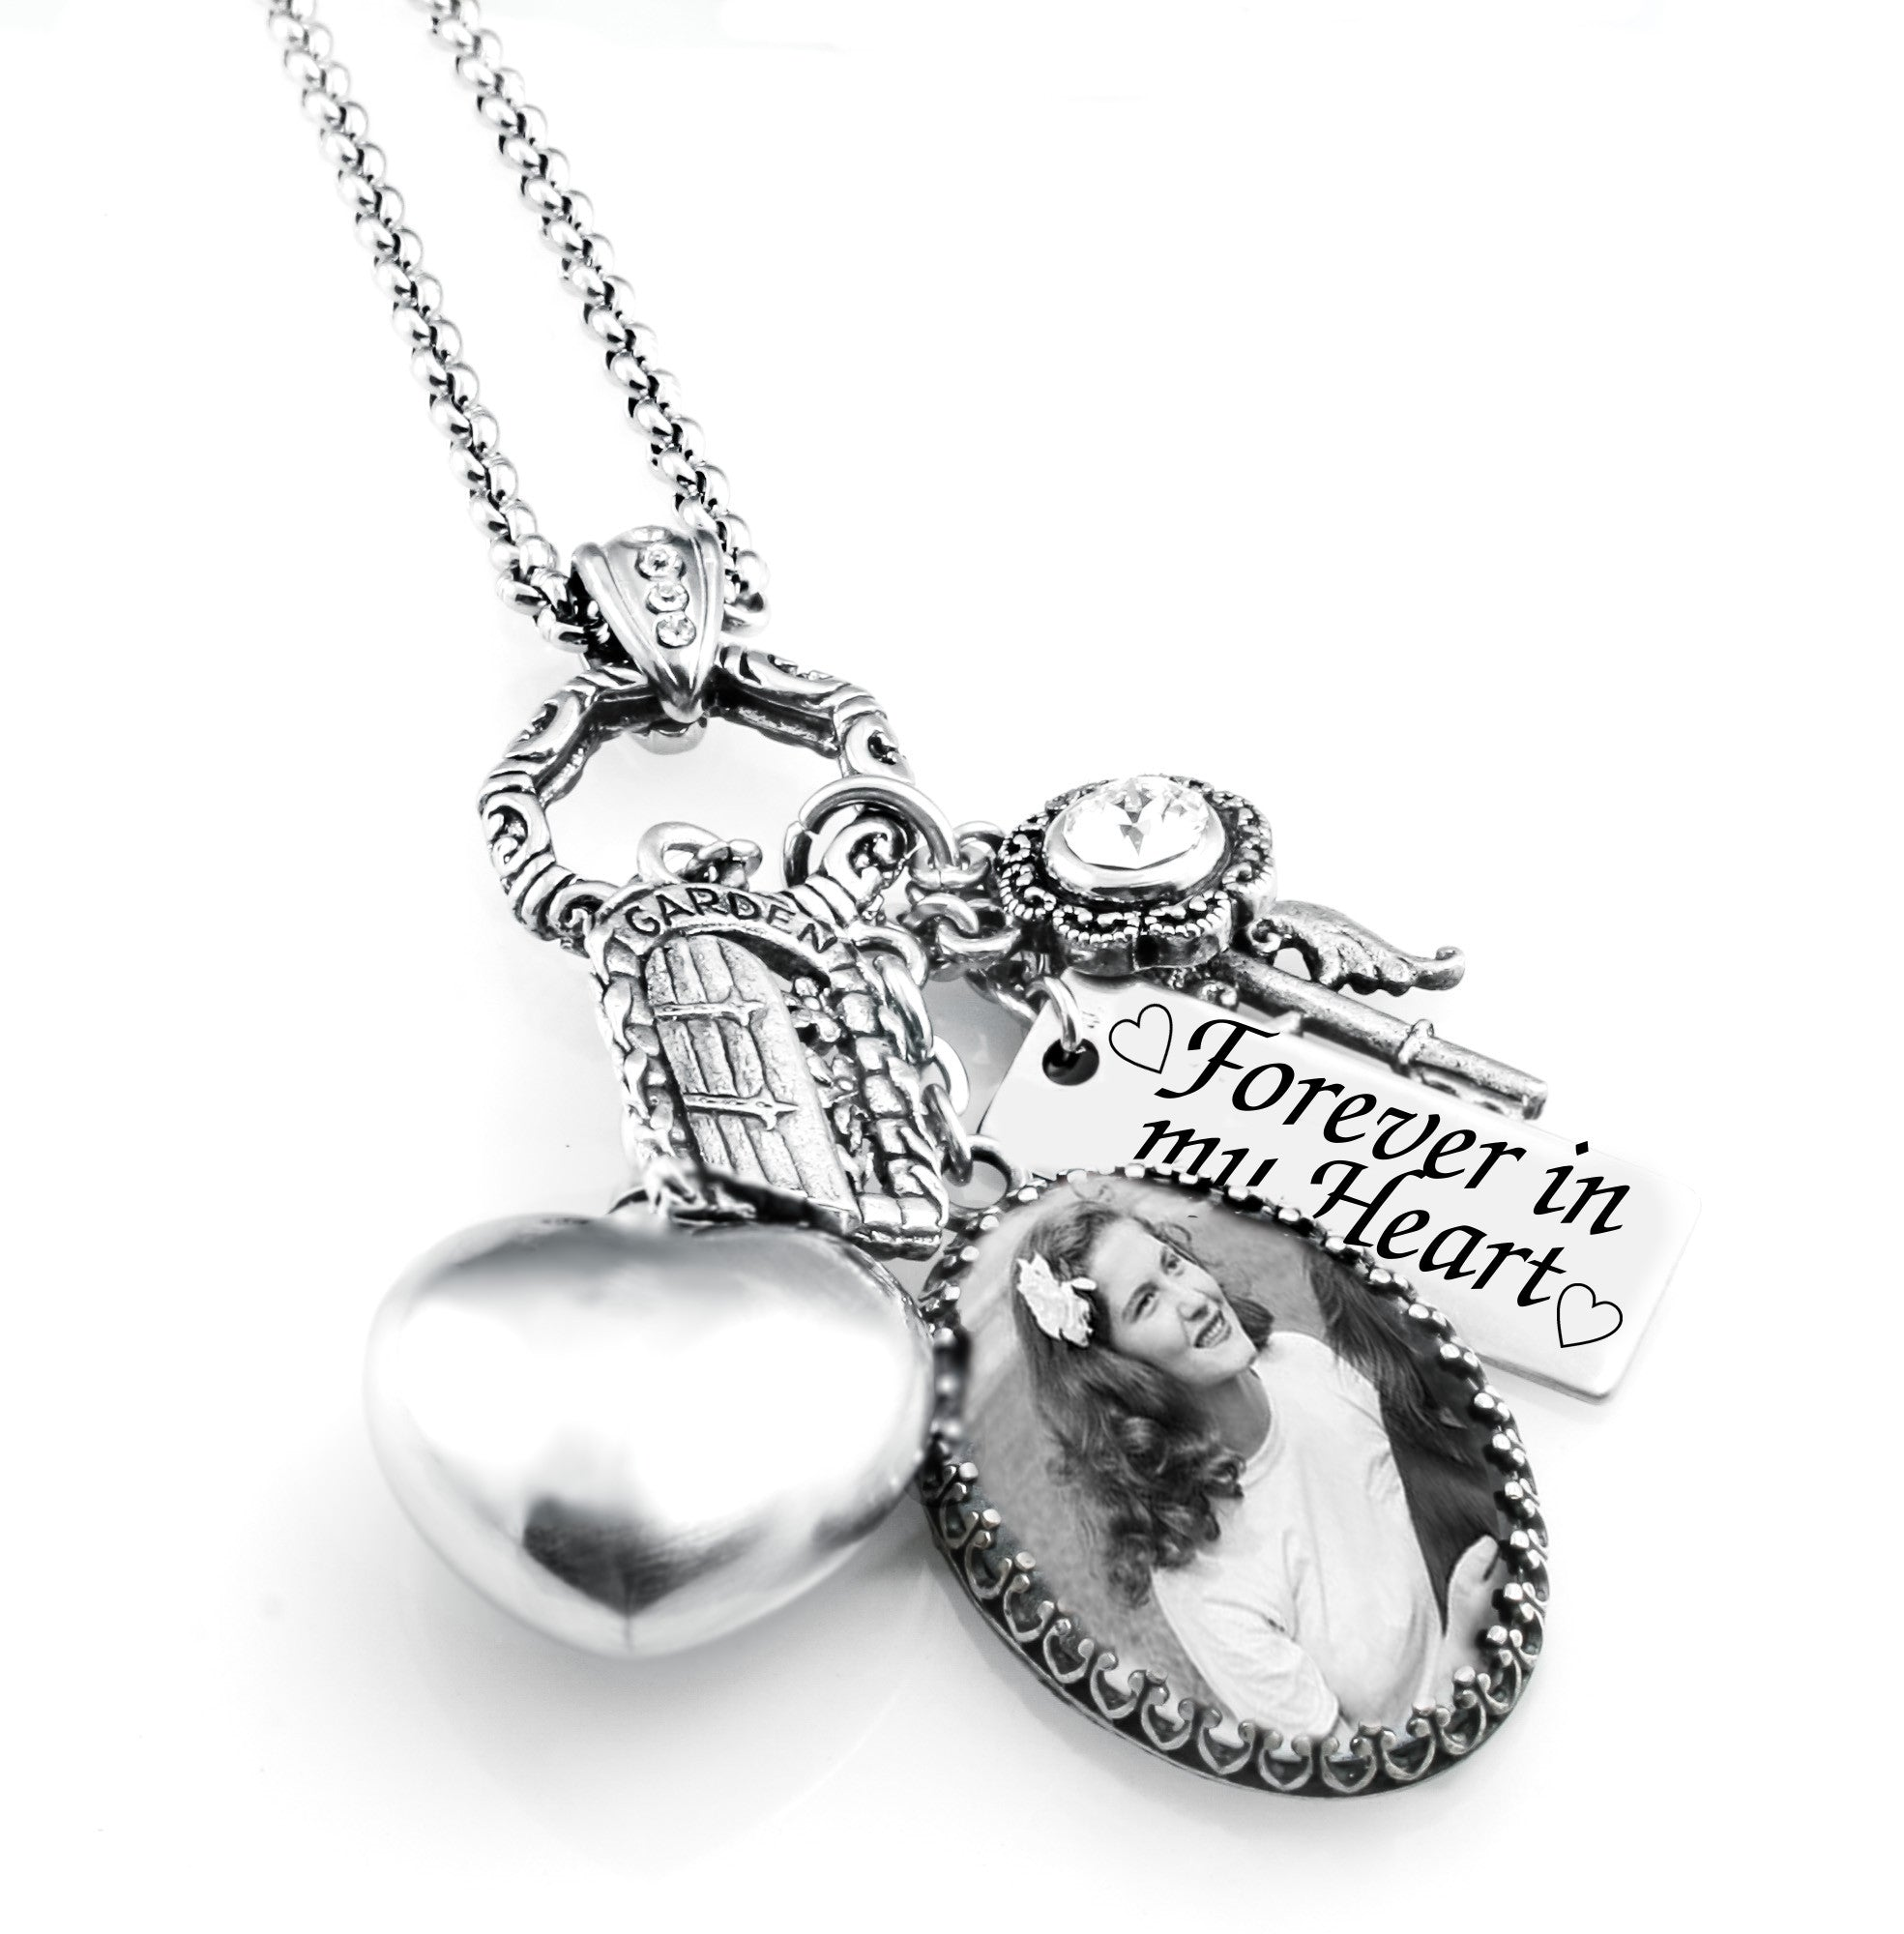 engraved custom necklace stainless steel pendant memorial fingerprint